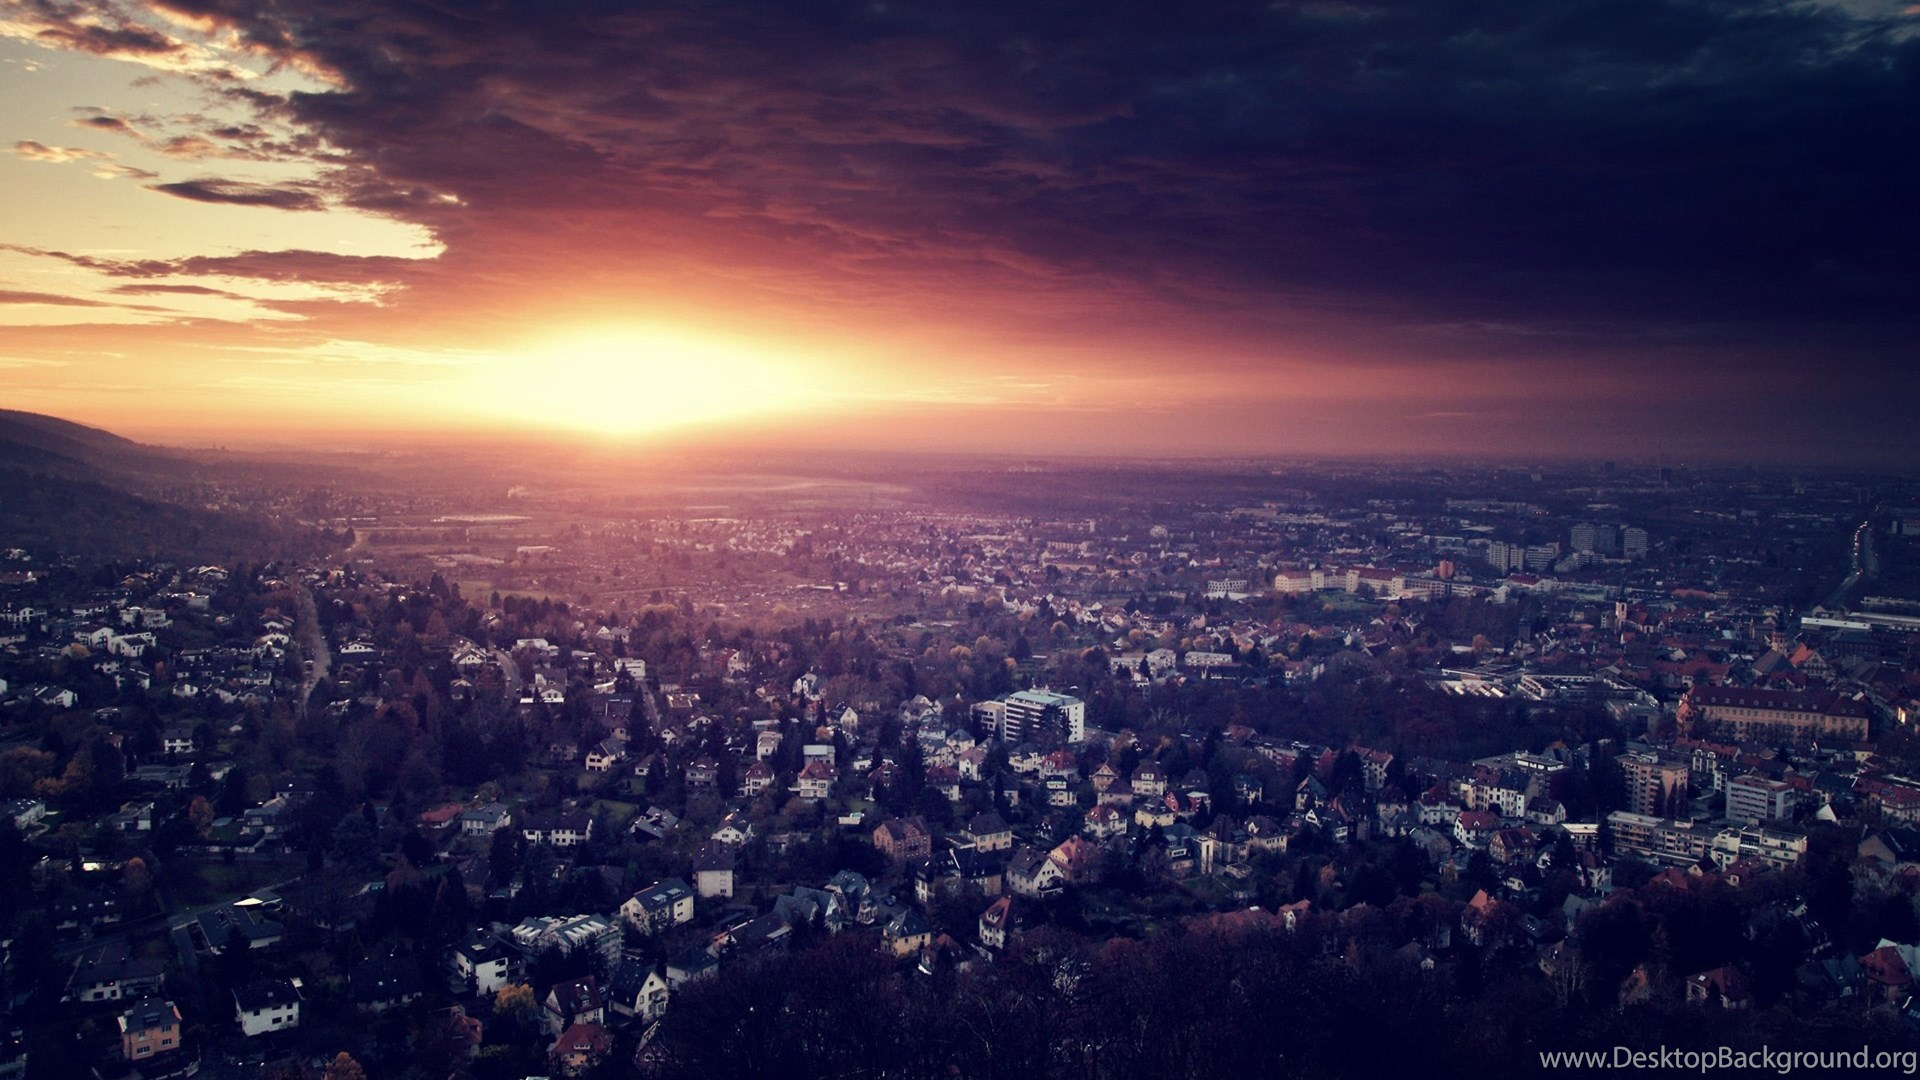 Download Wallpapers 3840x2400 City, Night, Top View, Light